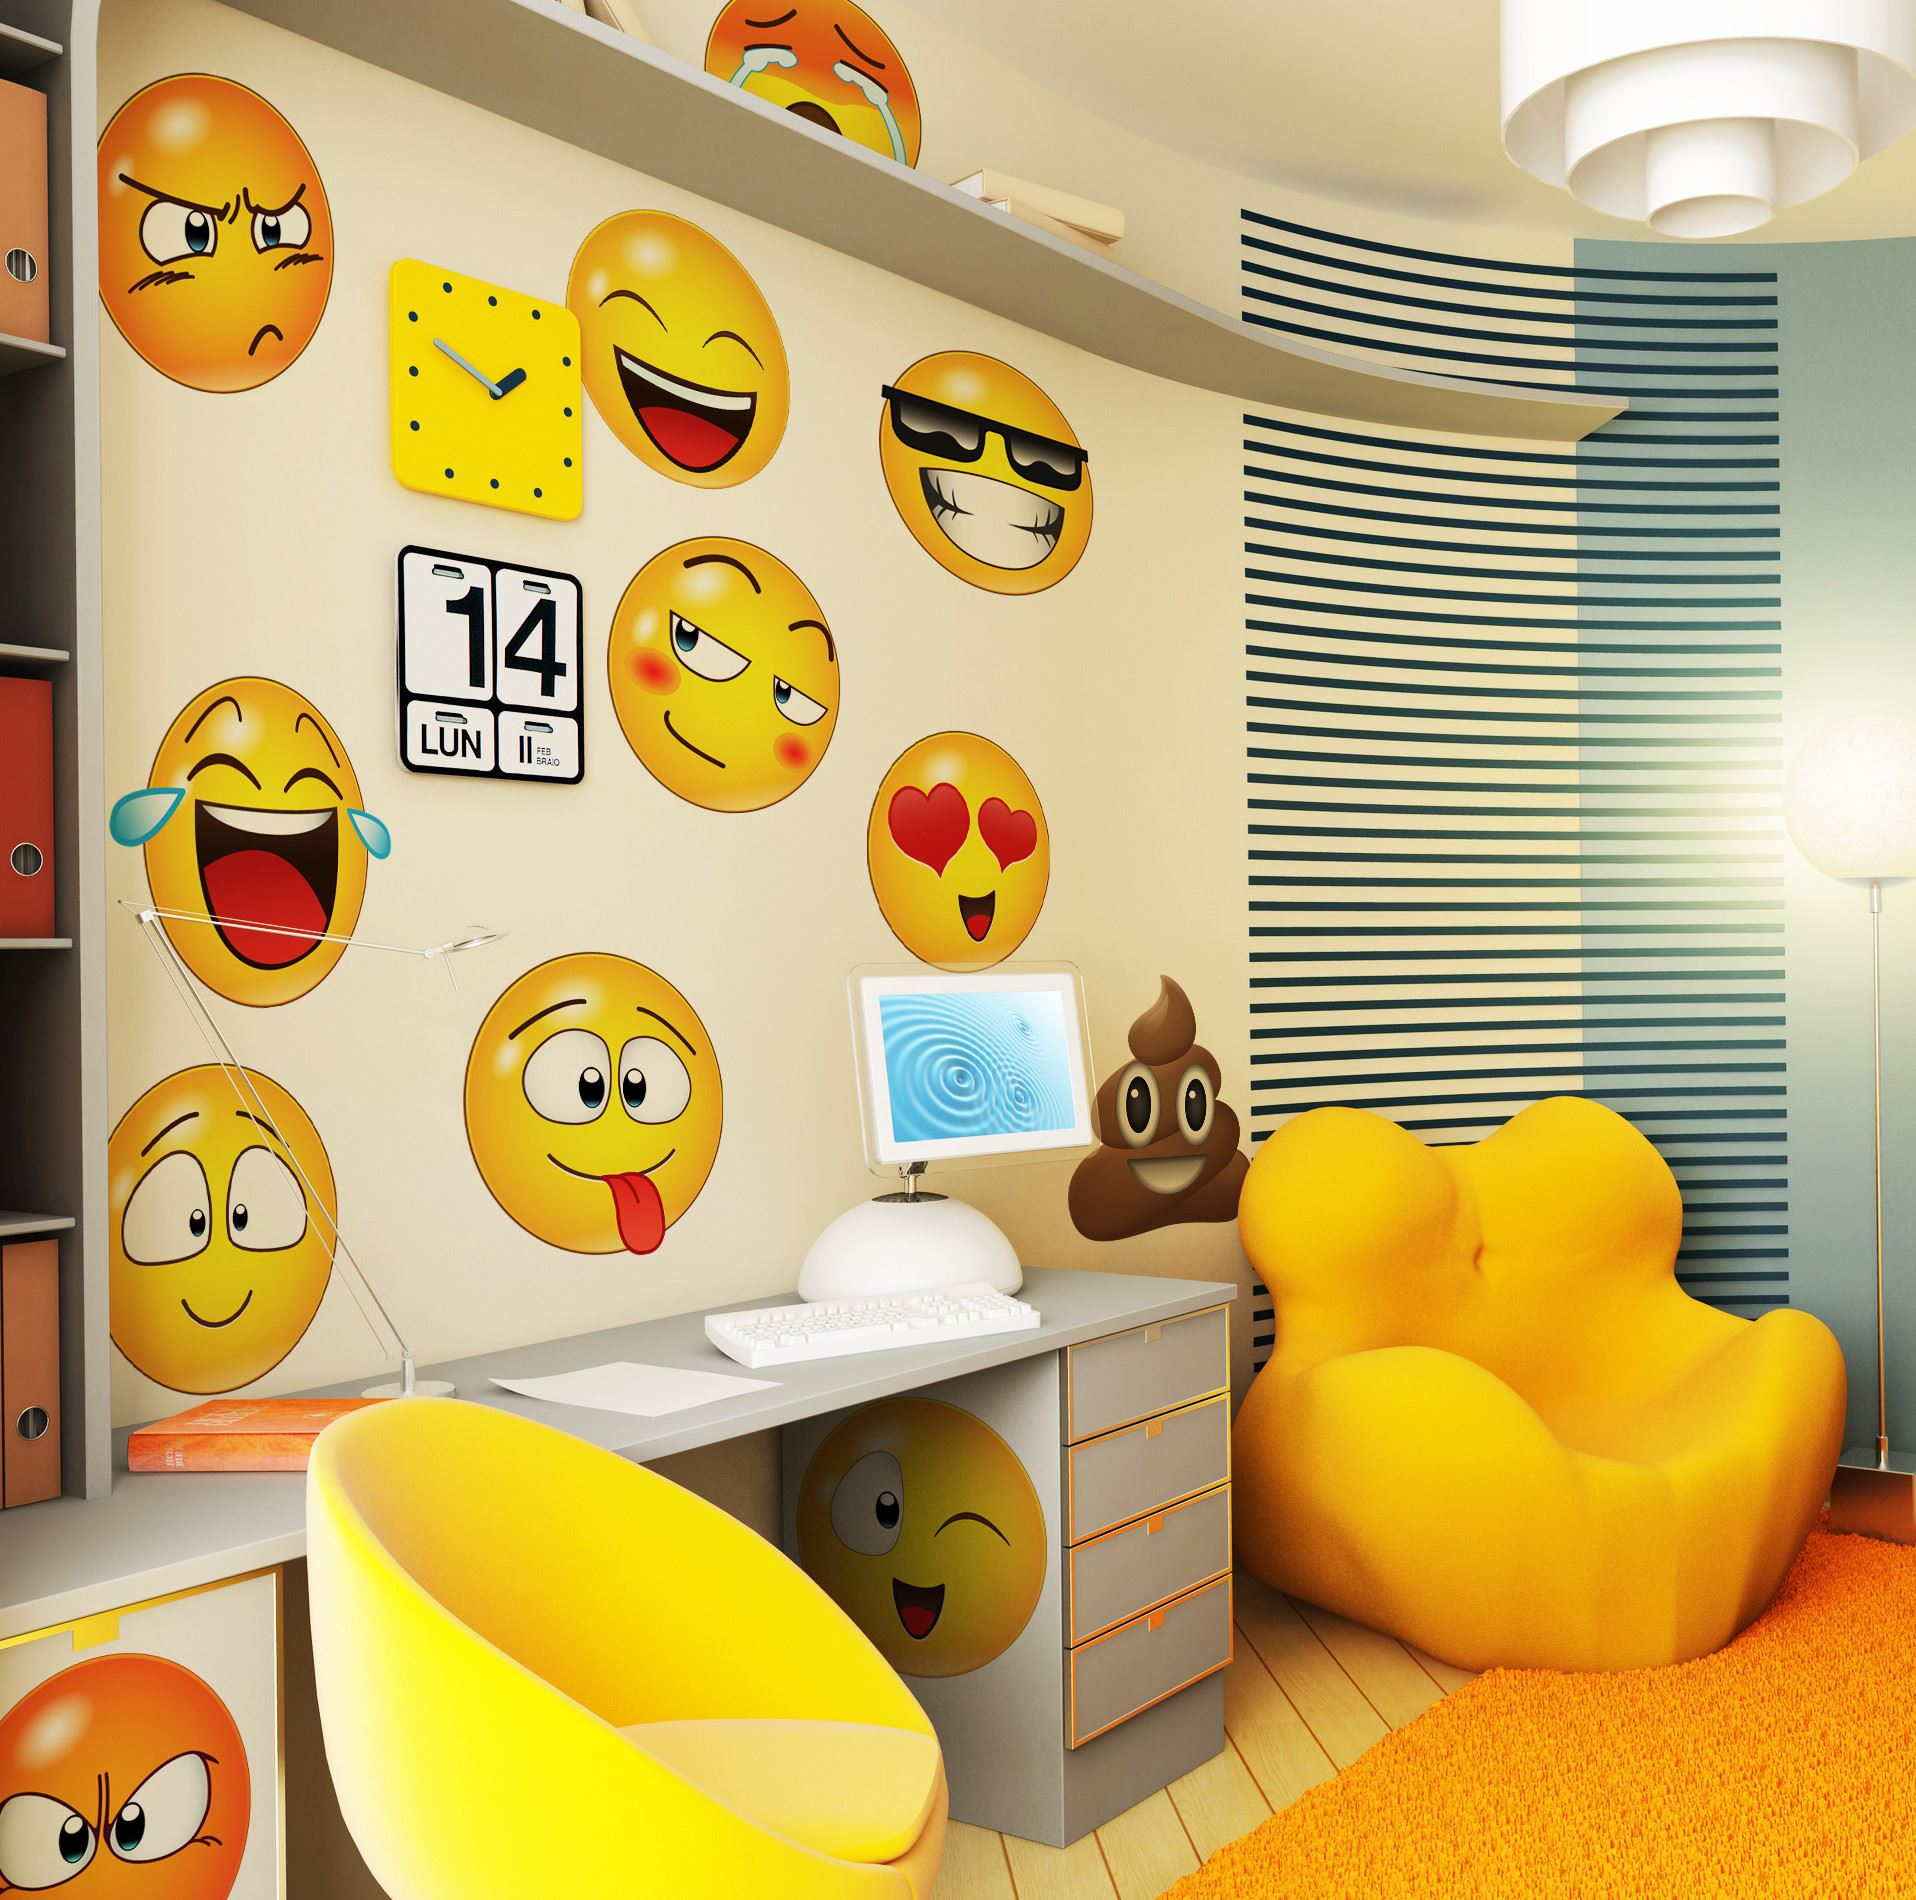 Large Emoji Faces Wall Decal Sticker by Stickerbrand #6052 | eBay